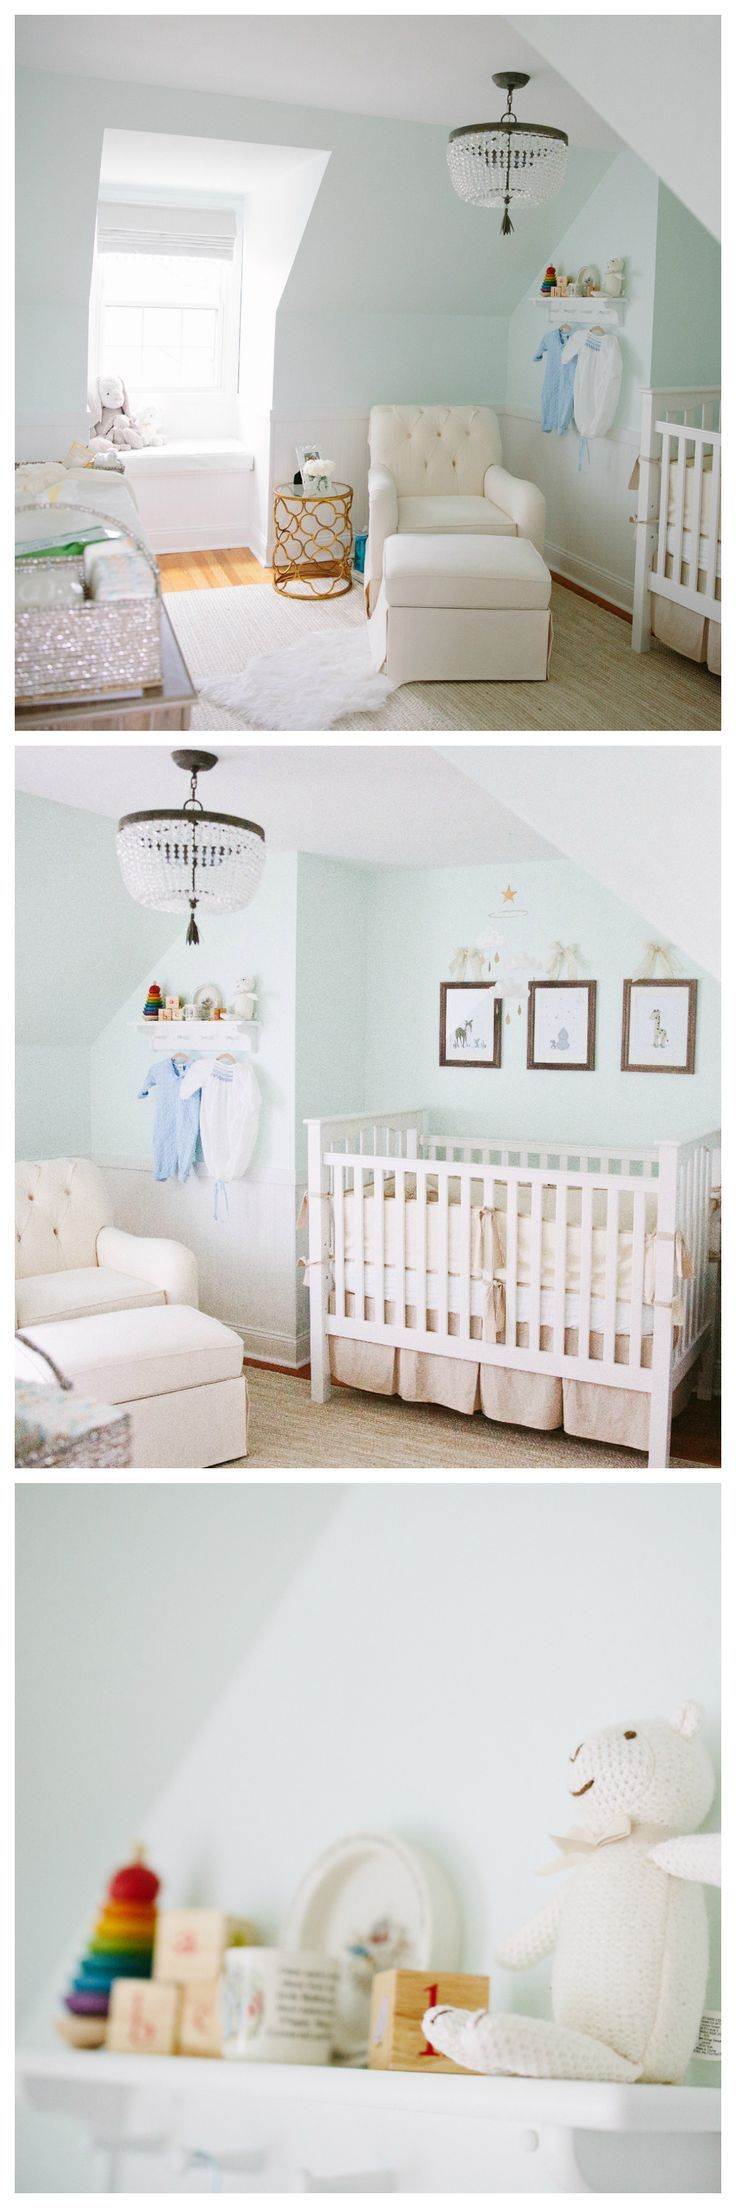 Elegant Gender Neutral Nursery - A light and bright nursery perfect for a baby boy or girl.